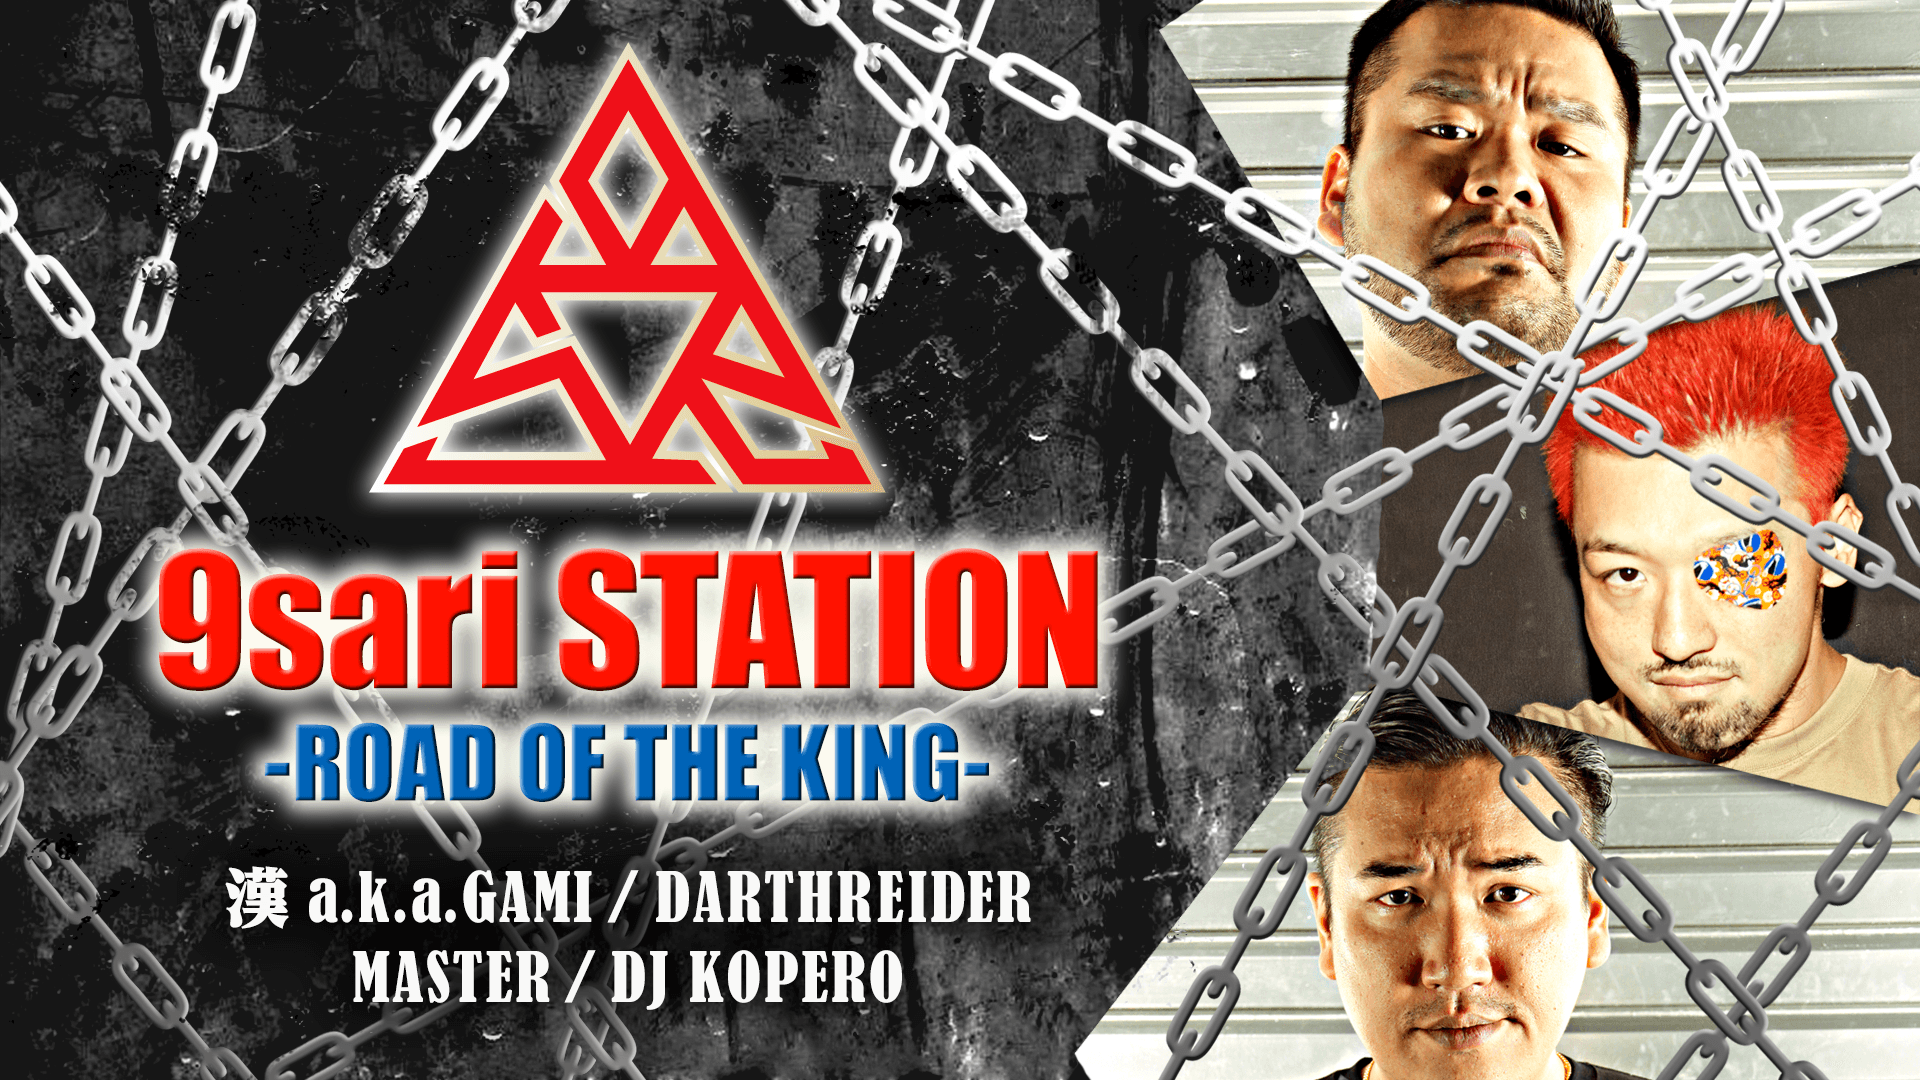 9sari_STATION_ROAD_OF_THE_KING